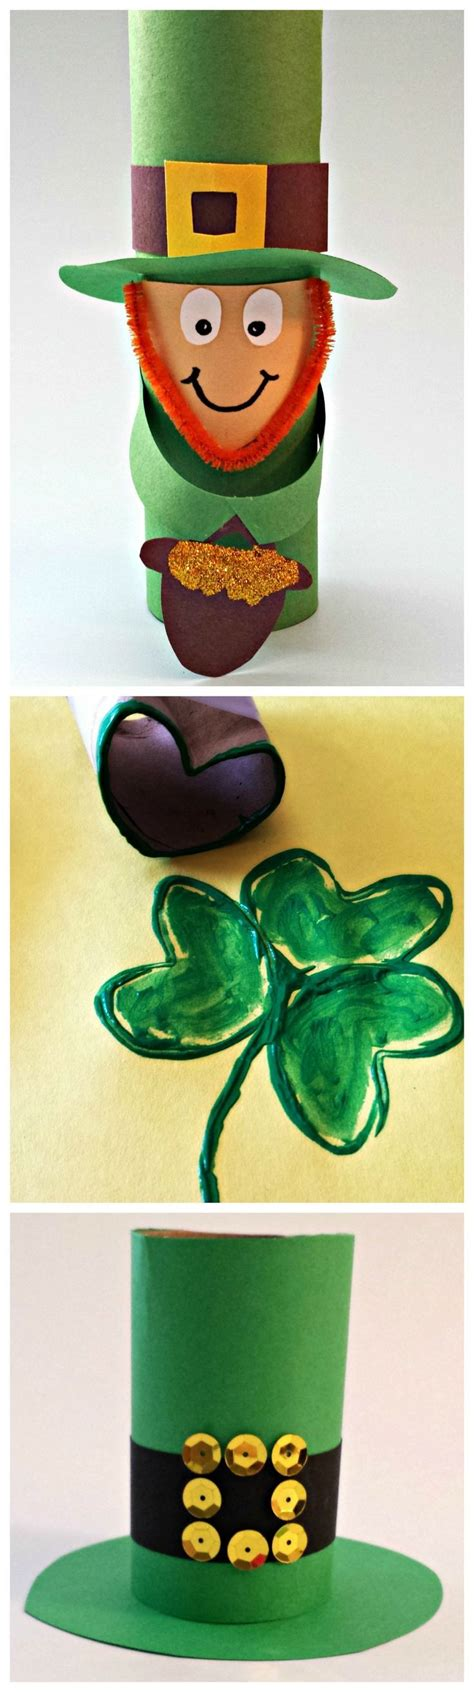 Leprechaun Toilet Paper Roll Craft - 2015 top 20 easy st s day crafts ideas fashion